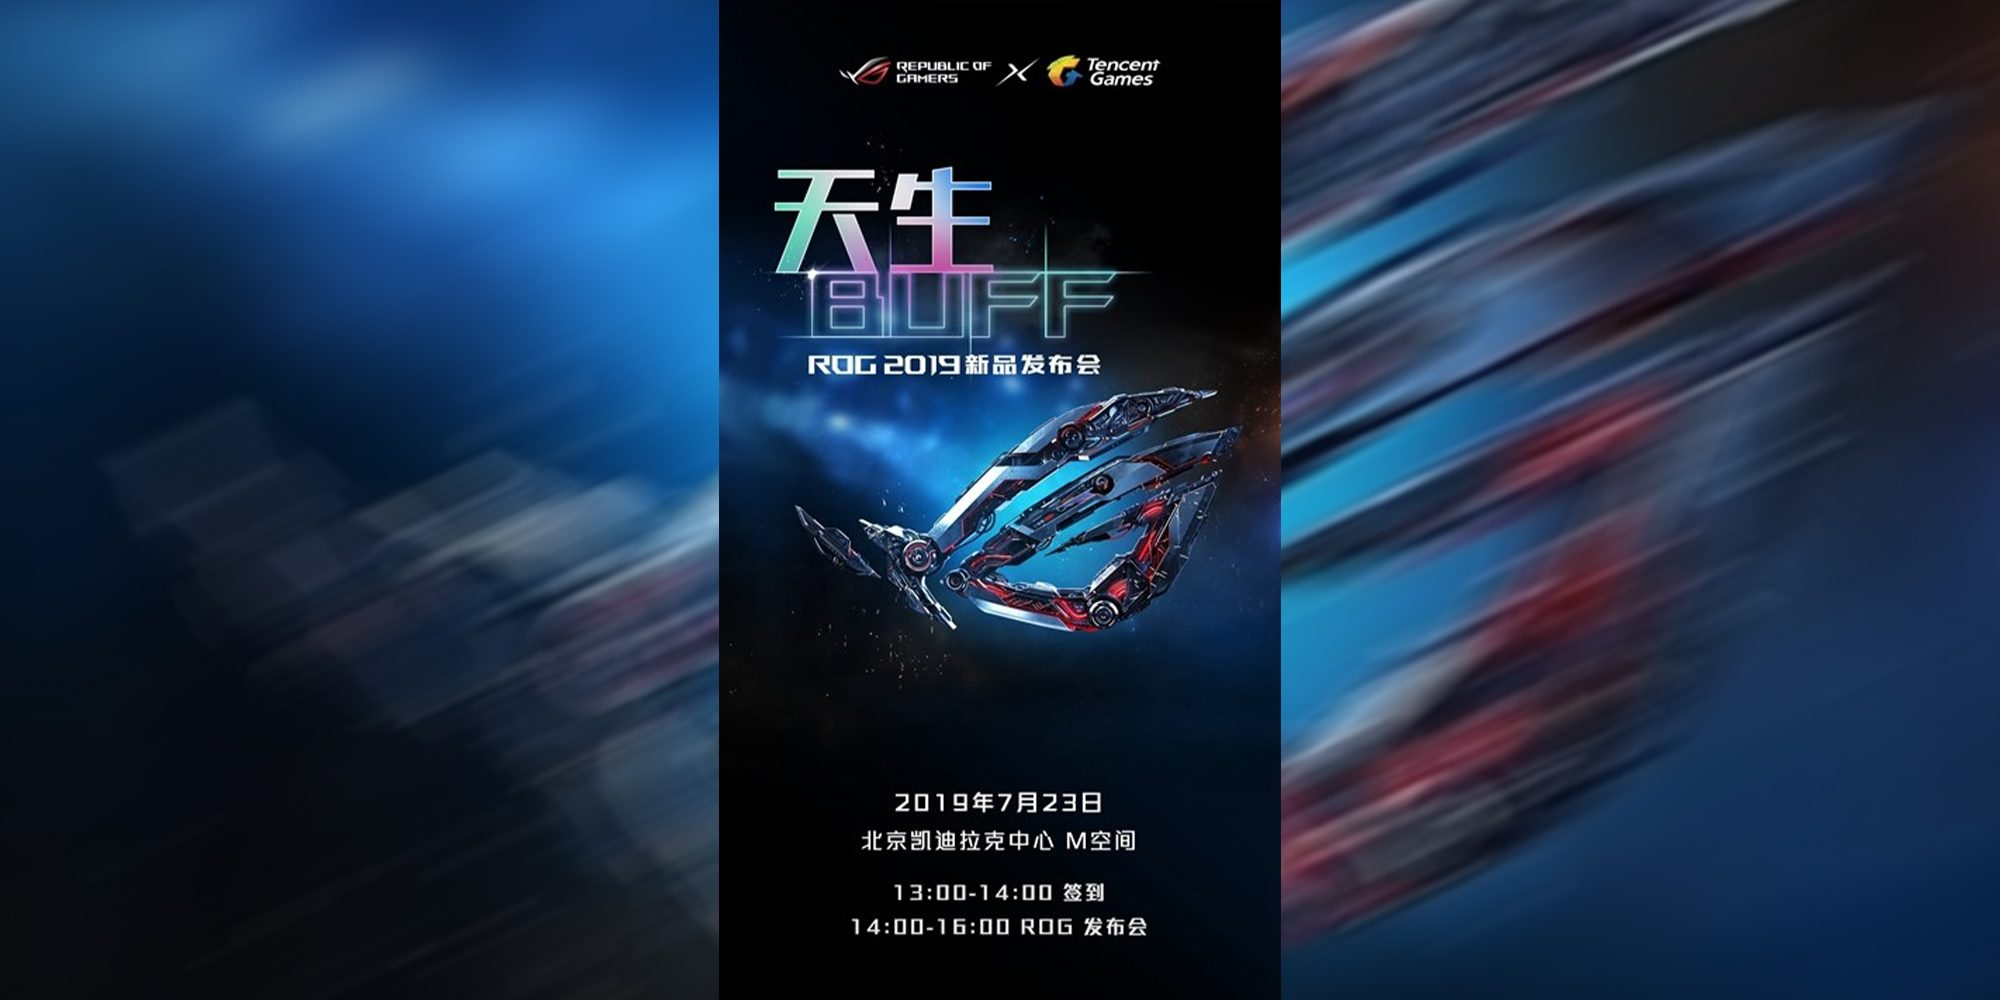 The Asus ROG Phone II Tencent Gaming Edition Going For $510 Only As Preorders Surpass 2 Million